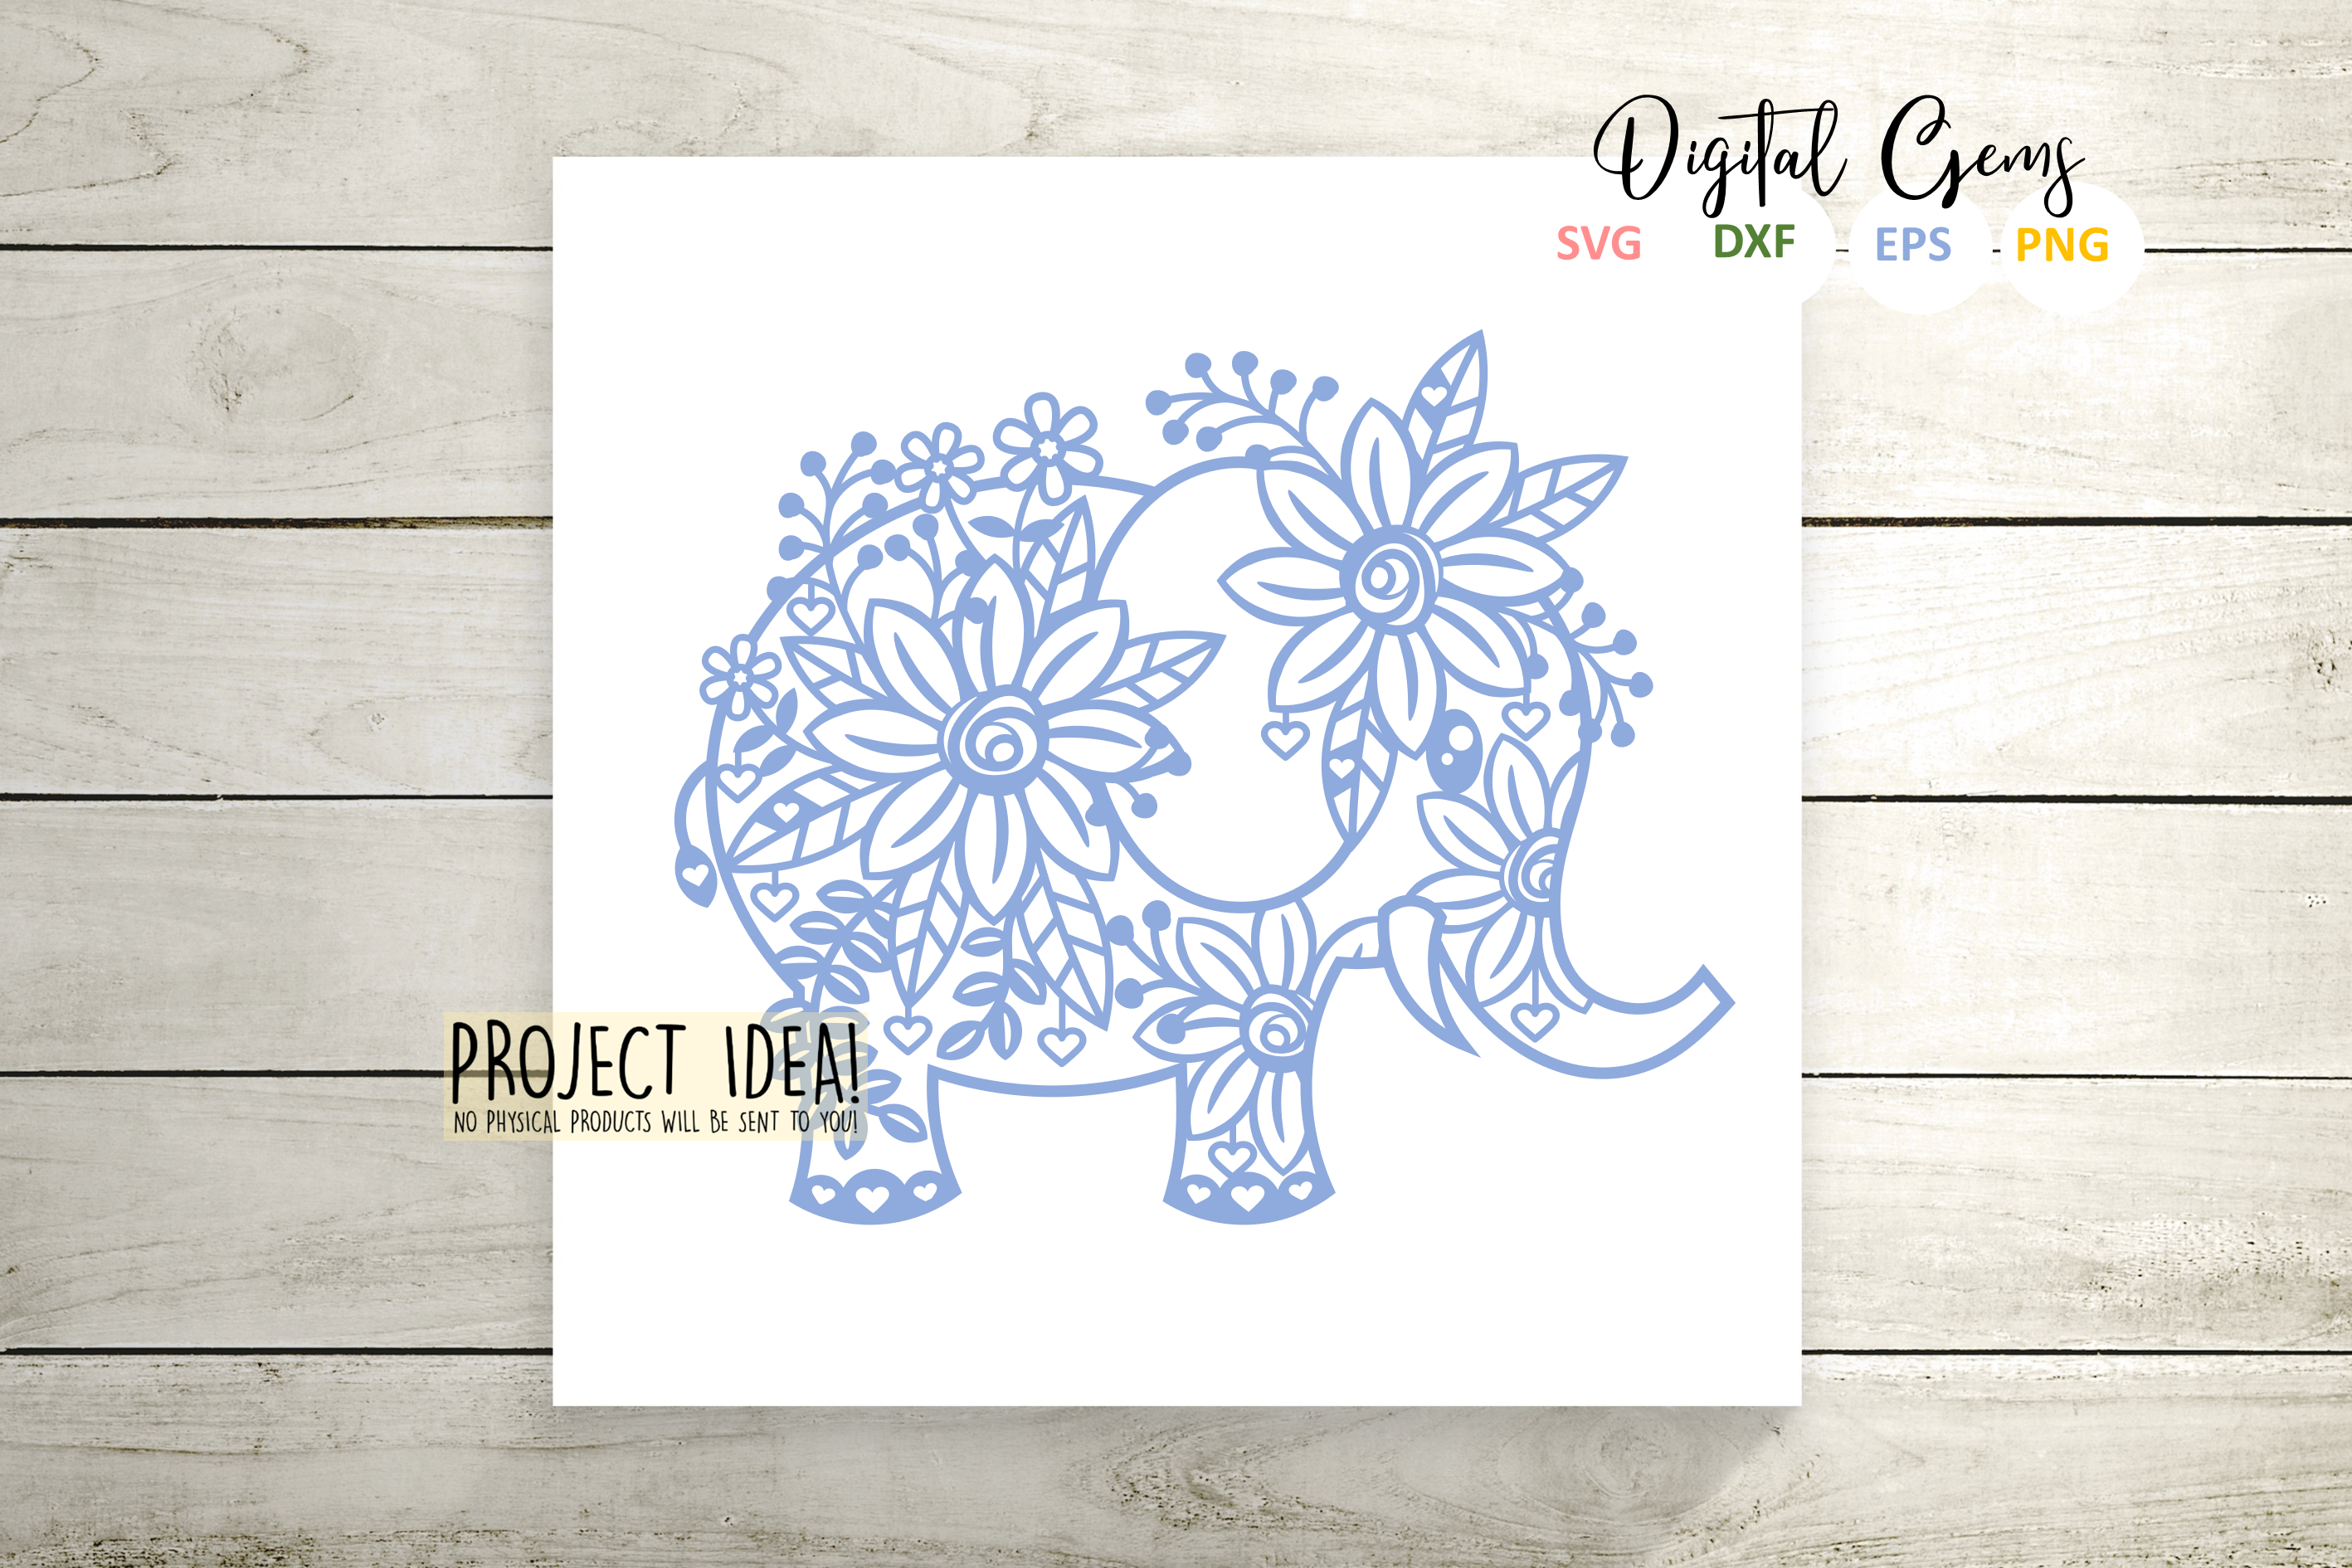 Elephant paper cut design SVG / DXF / EPS / PNG files example image 5